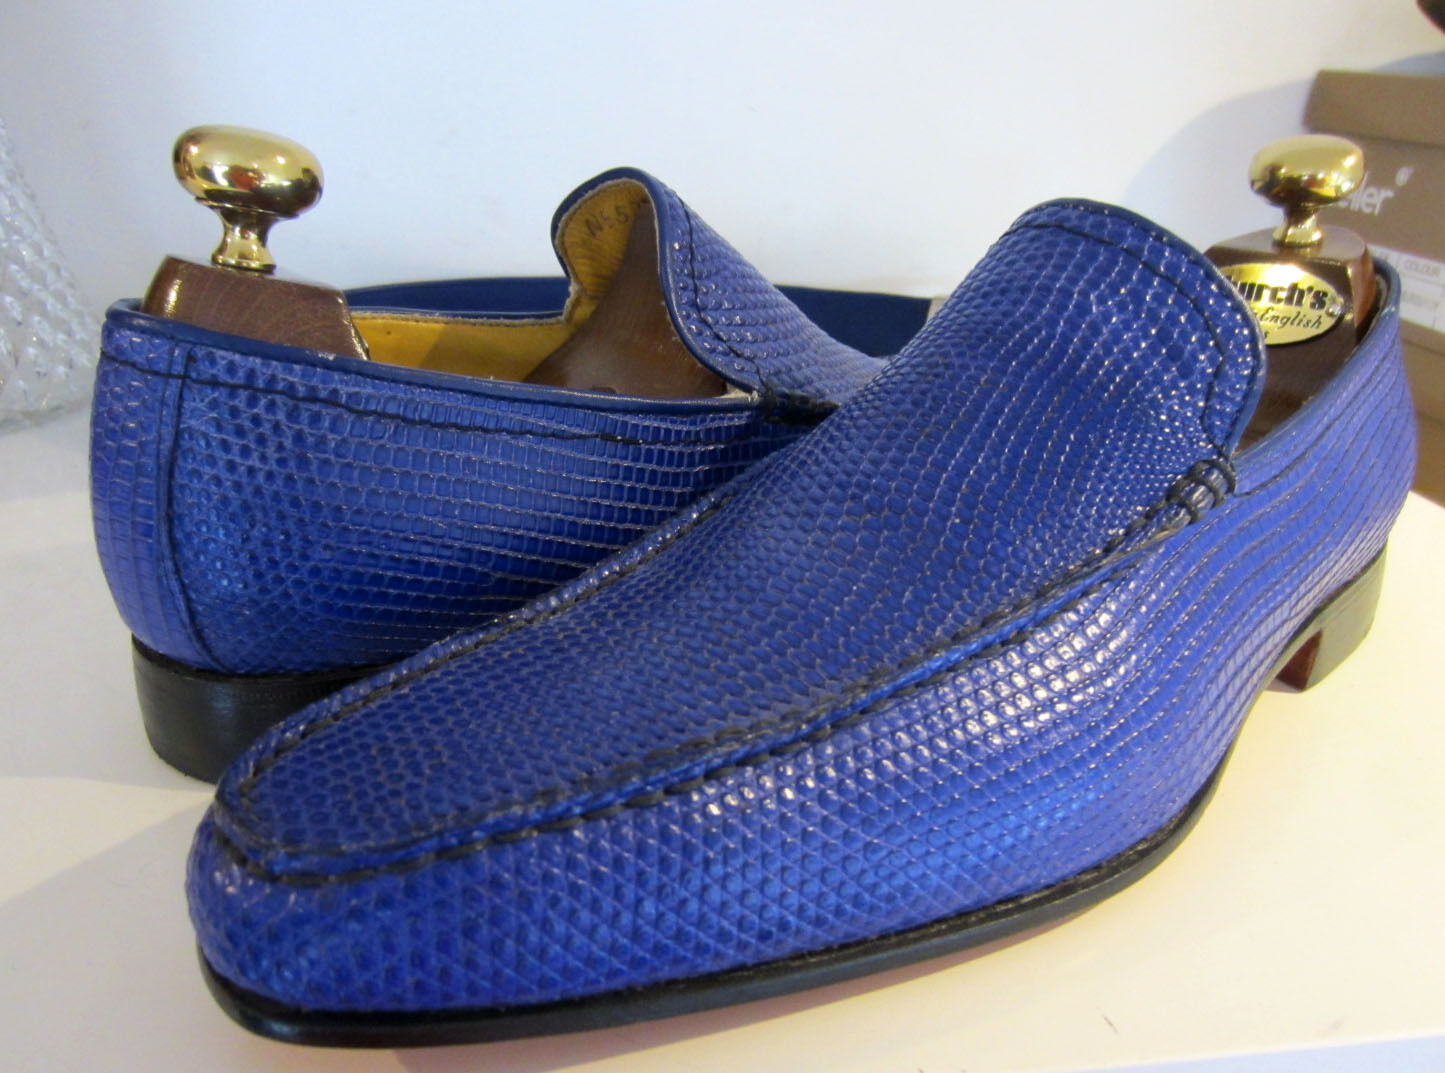 Haute Couture Hand Made Electric Blau Leder Leder Leder Loafers schuhe UK 8 EU 42  Belt f860e4